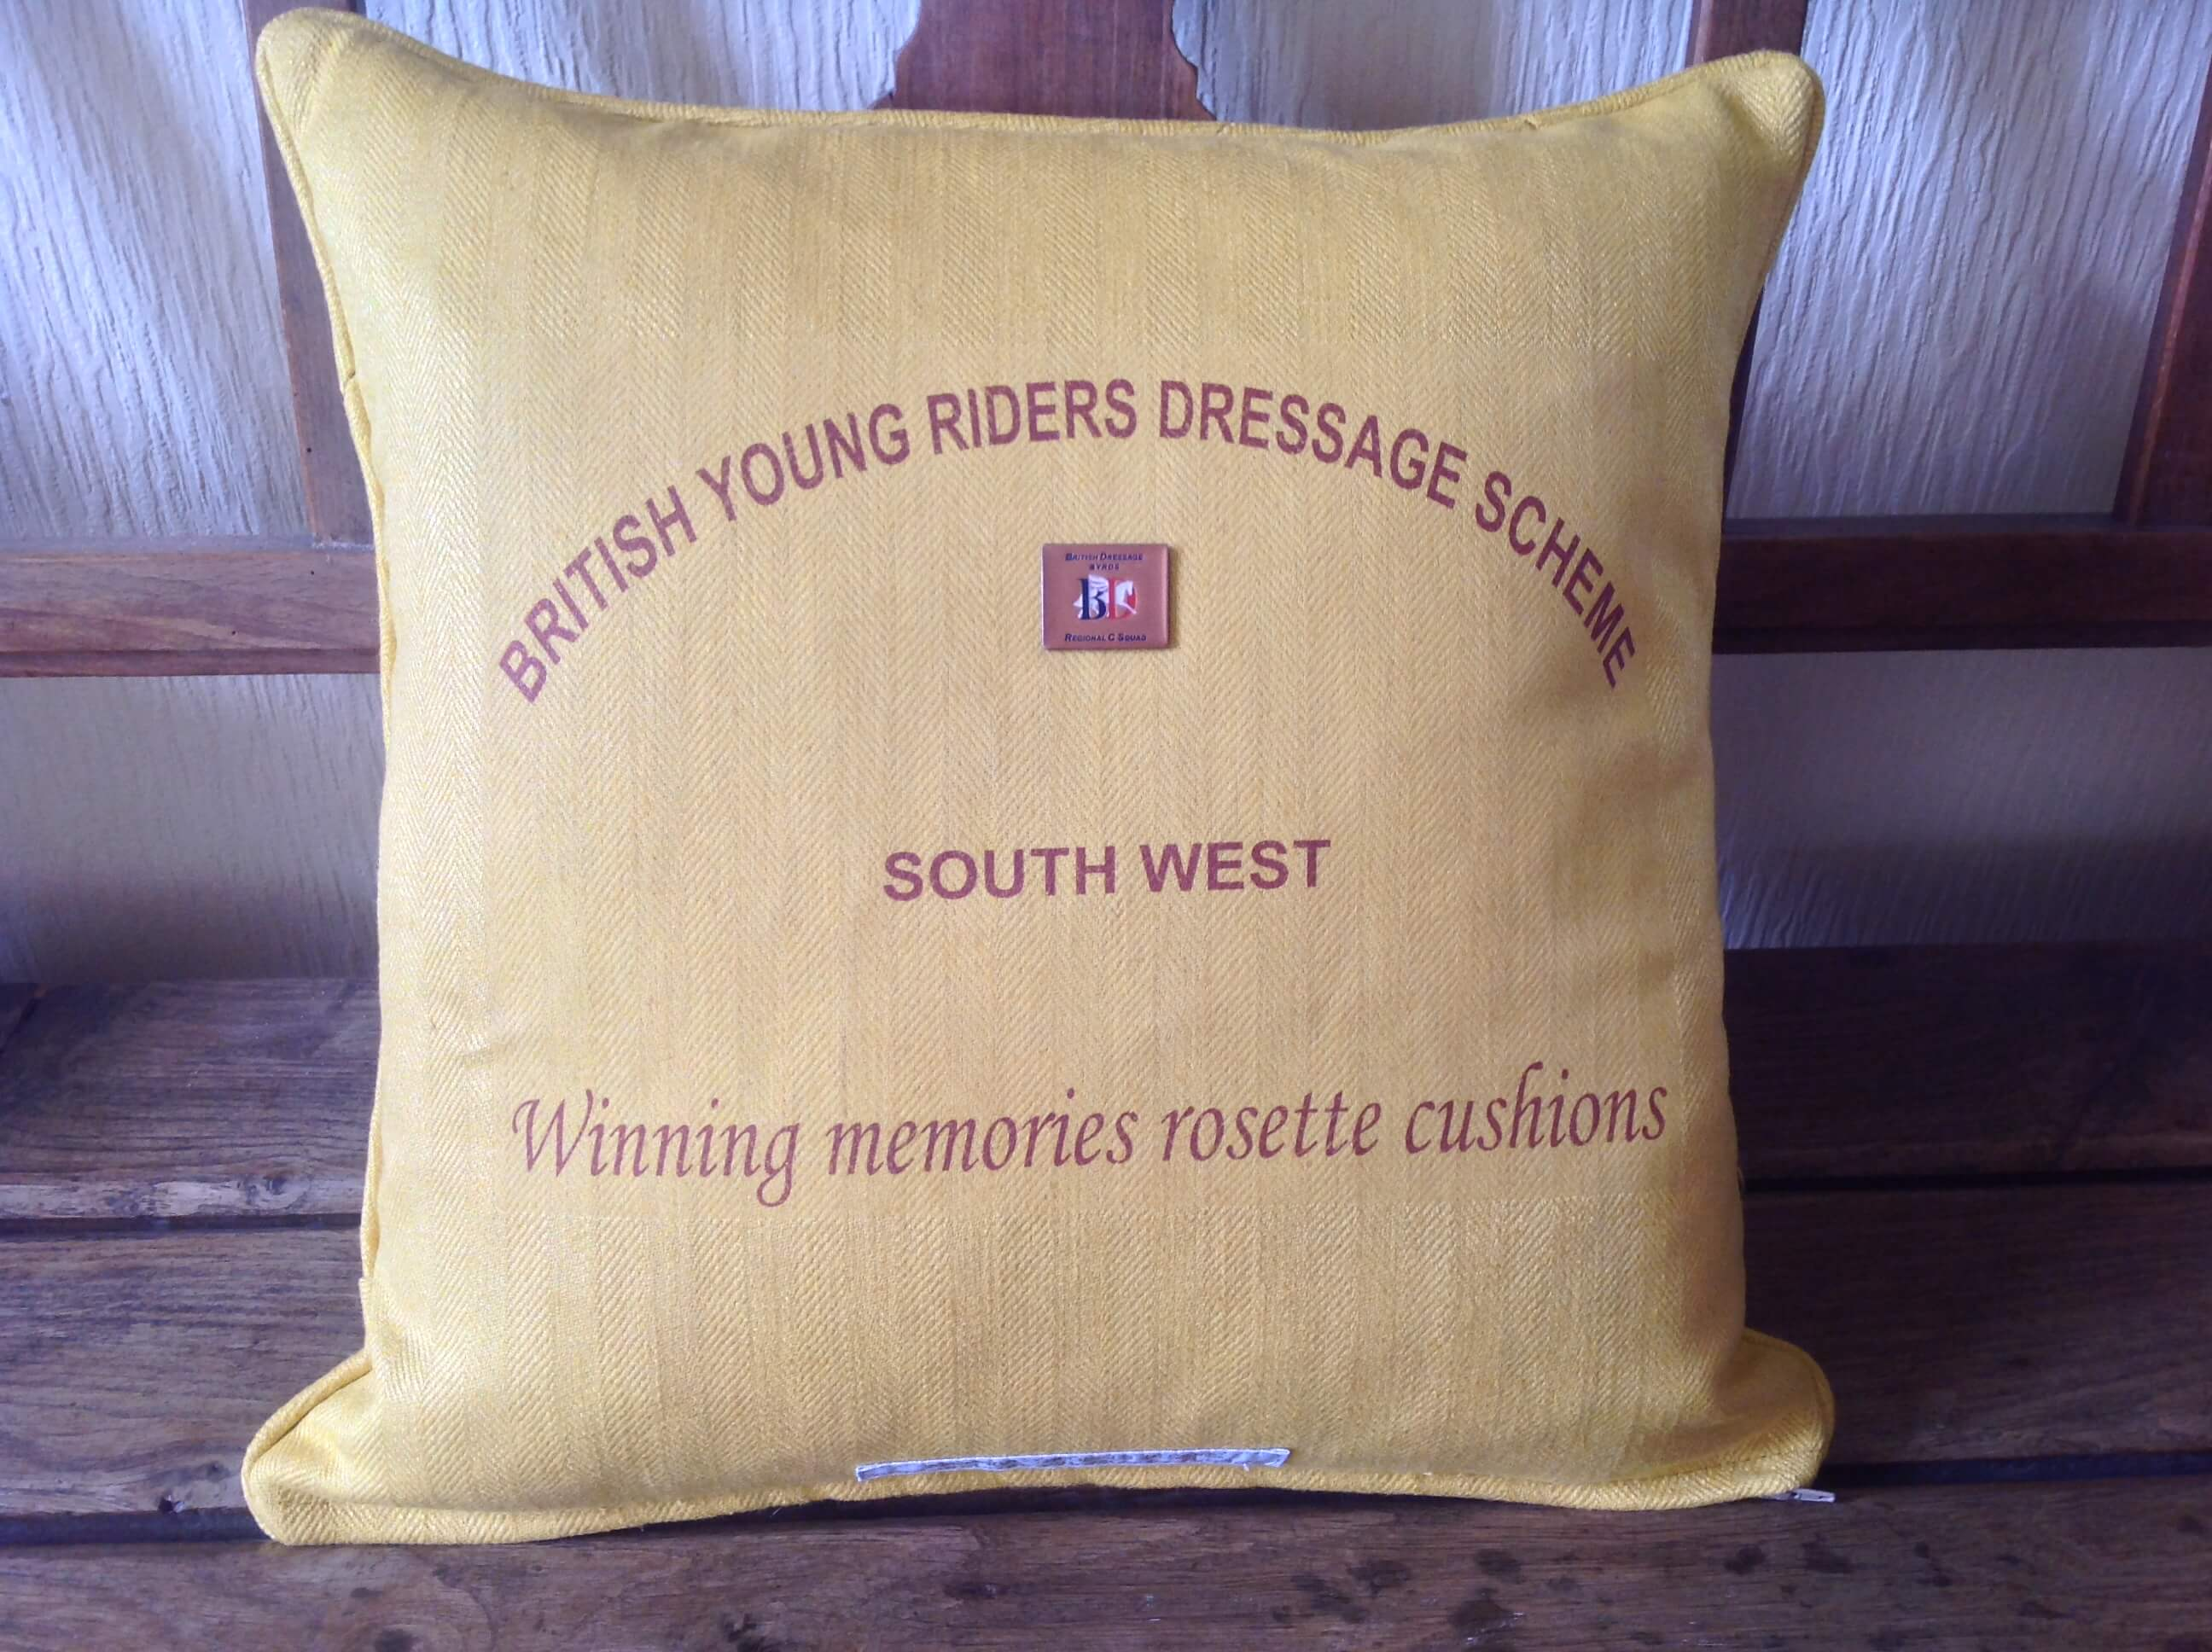 Winning Memories Competition Winner Cushion